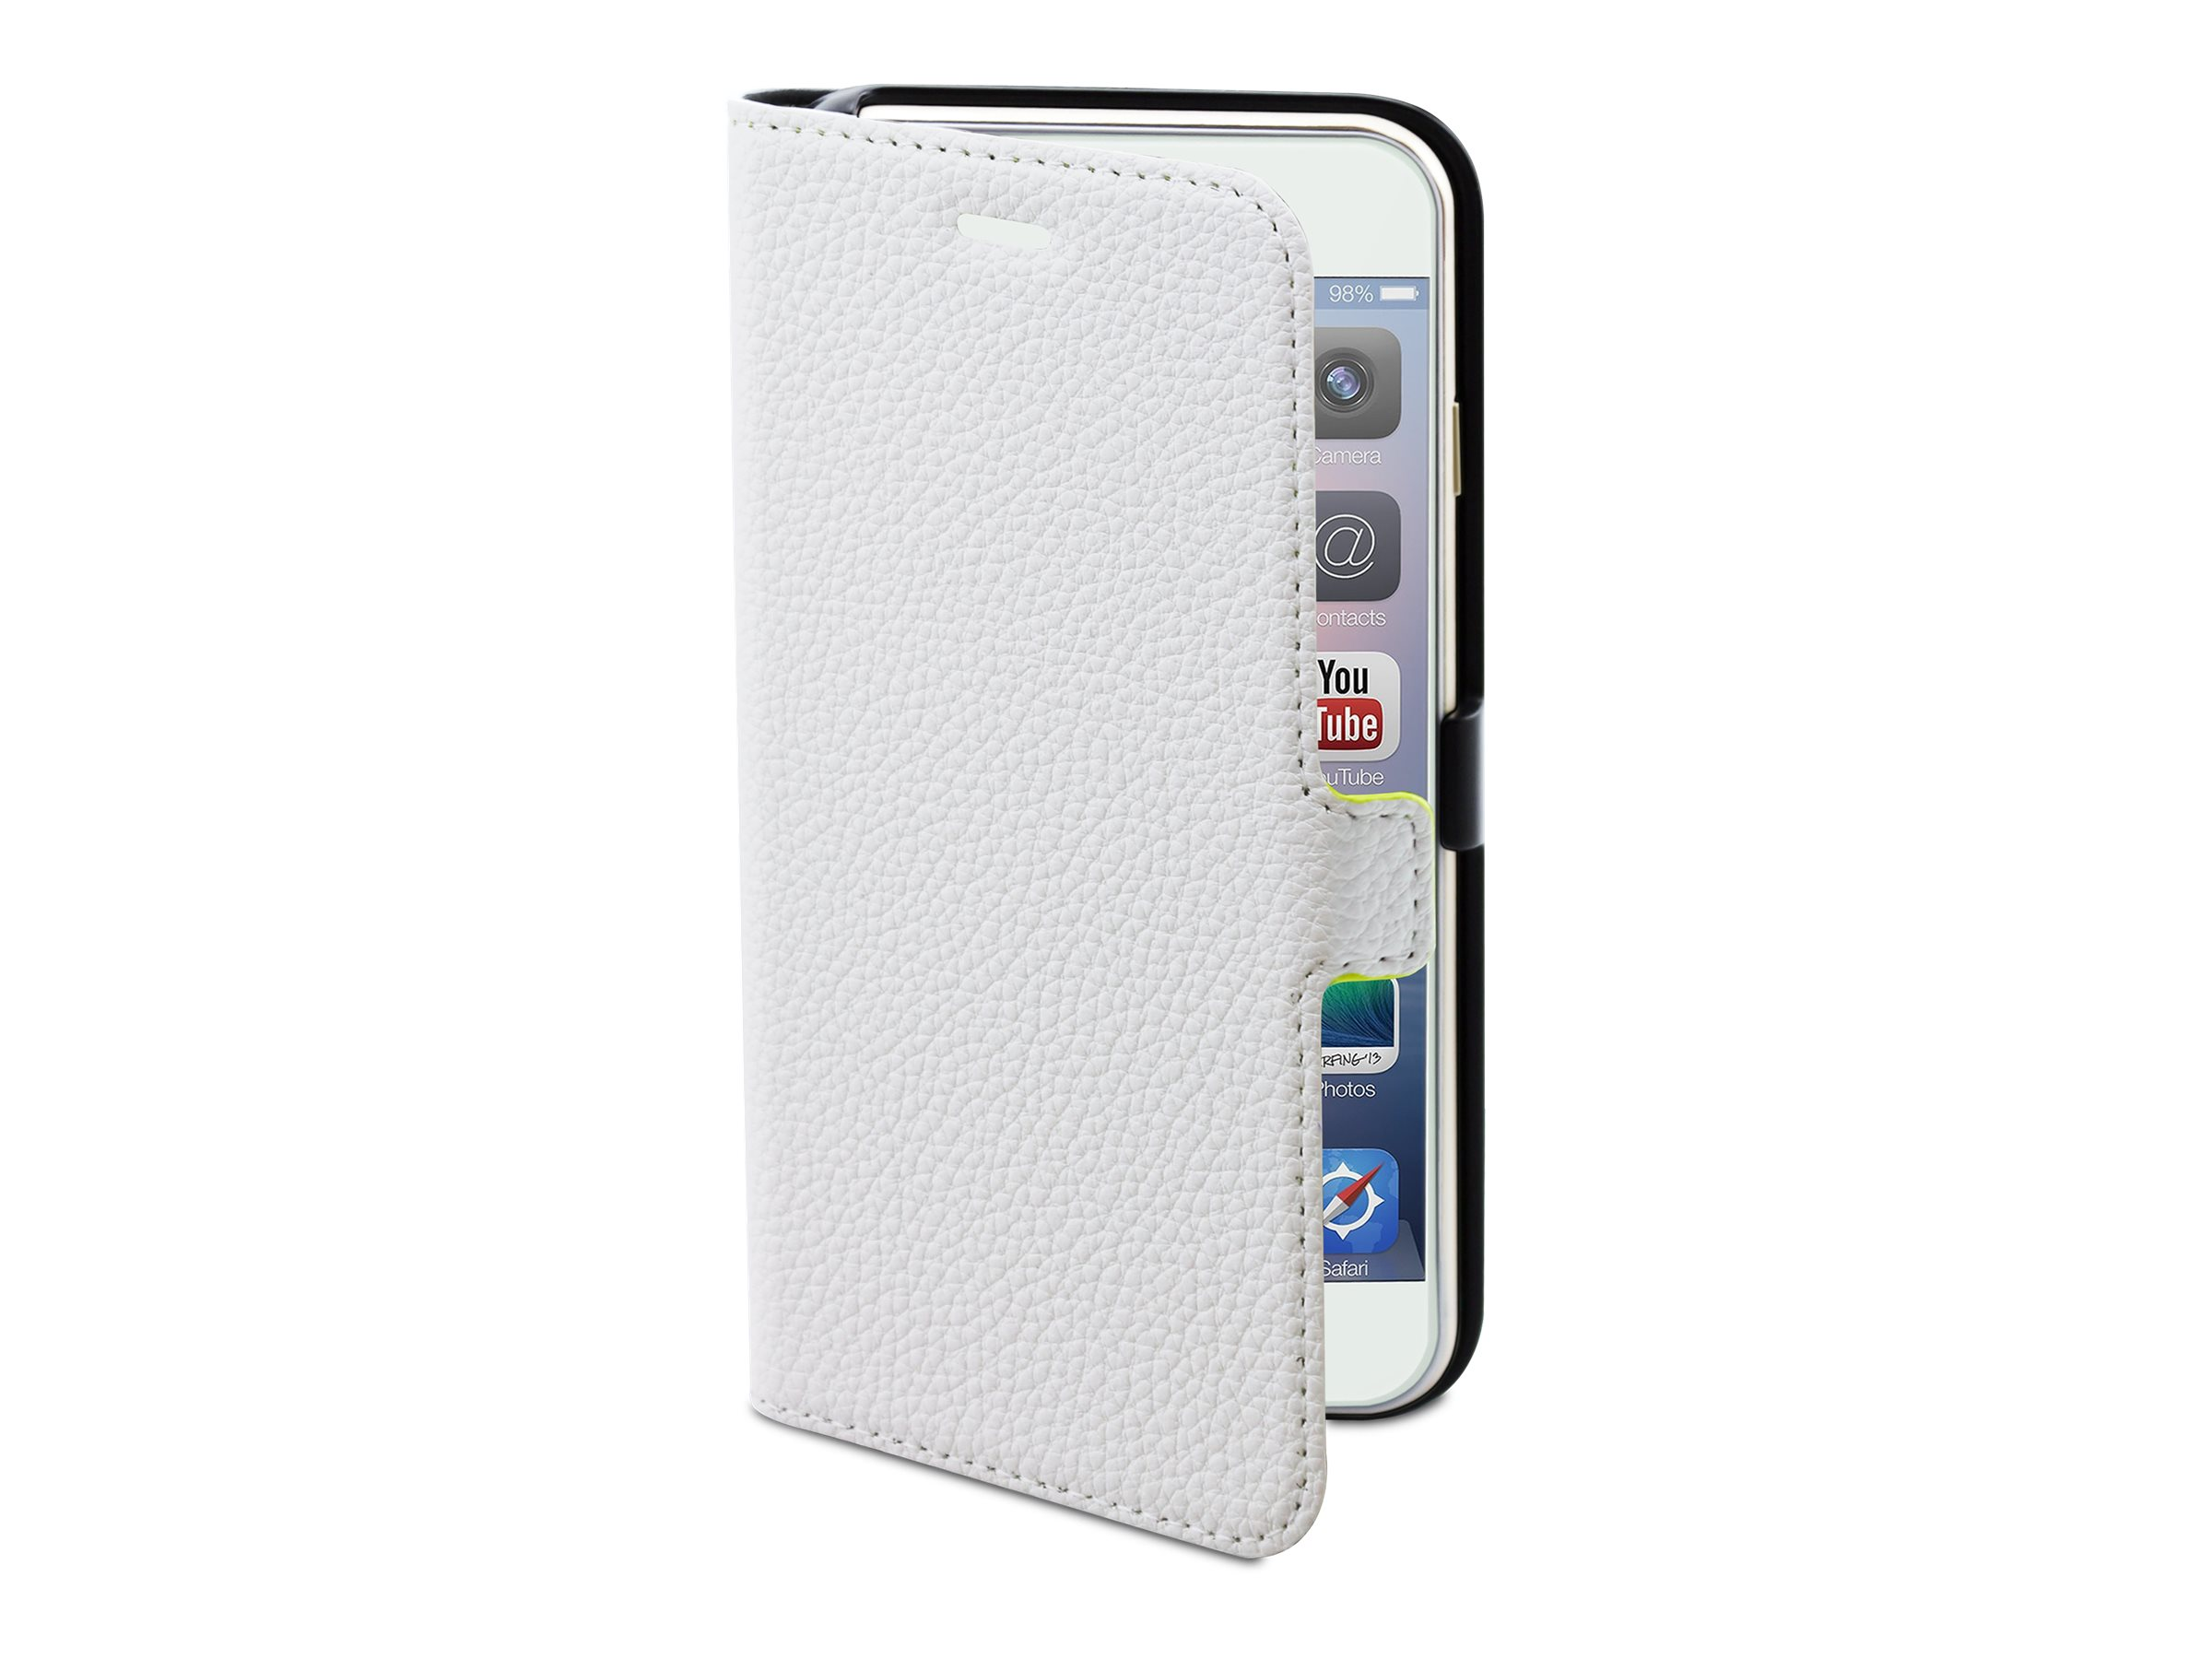 Muvit Slim Folio - Protection à rabat pour iPhone 6, 6s - blanc